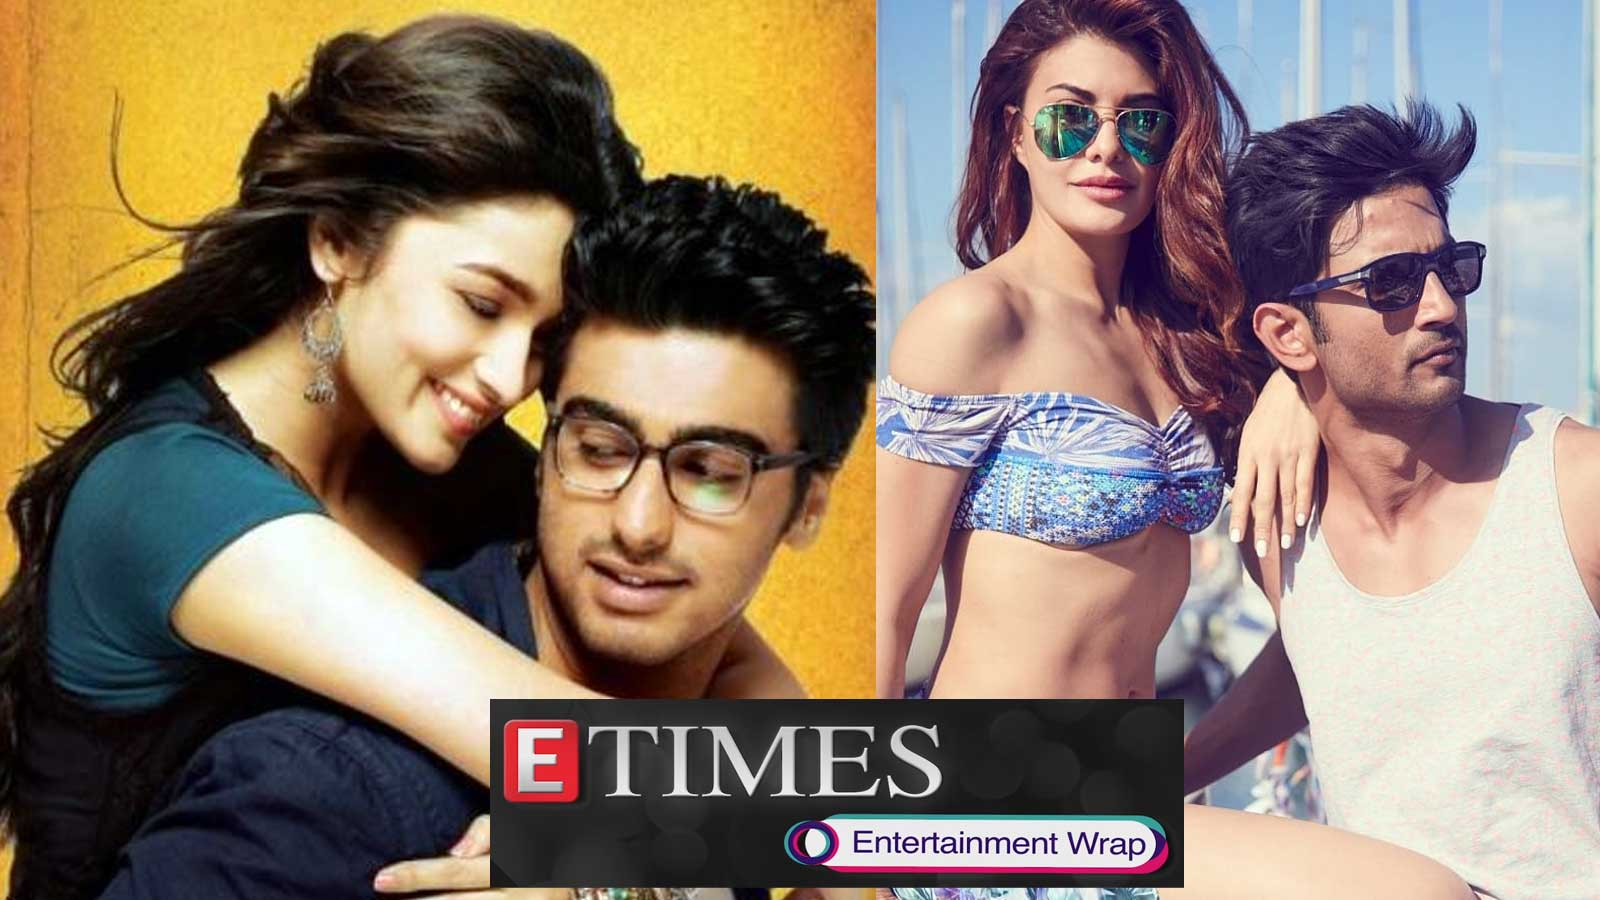 arjun-kapoor-trolls-alia-bhatt-but-bestie-akansha-ranjan-wittily-says-its-a-millennial-thing-jacqueline-flaunts-washboard-abs-with-sushant-and-more